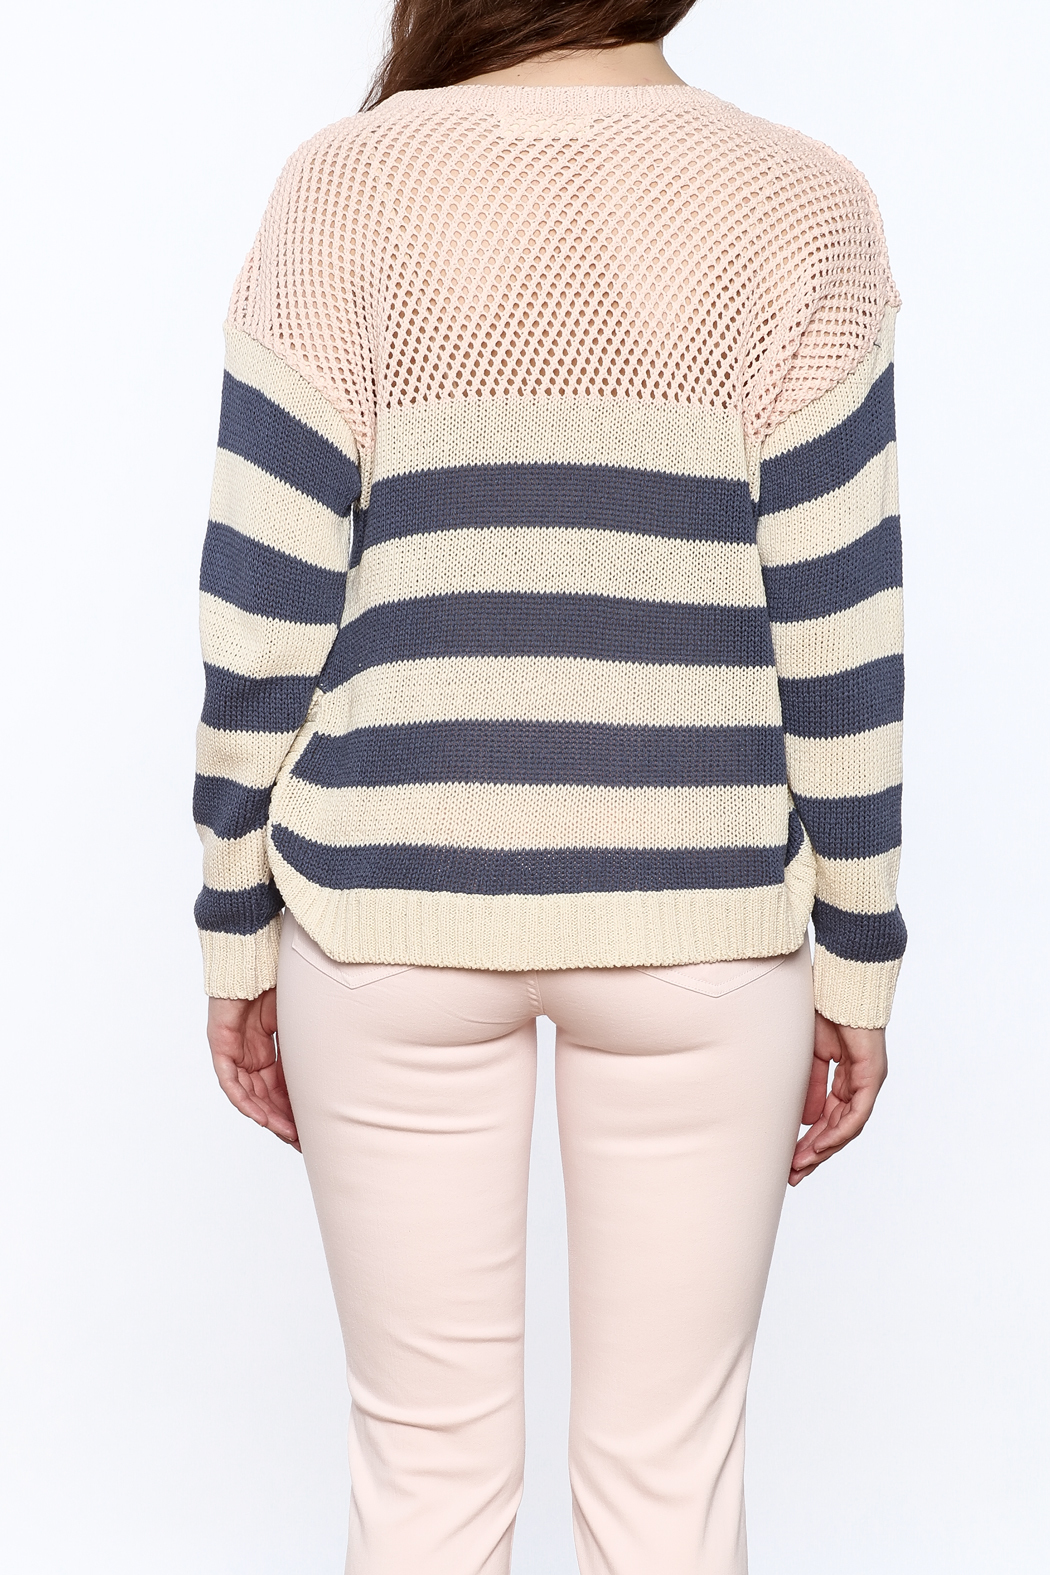 Weekend by Aldo Martins Summer Nautical Sweater - Back Cropped Image